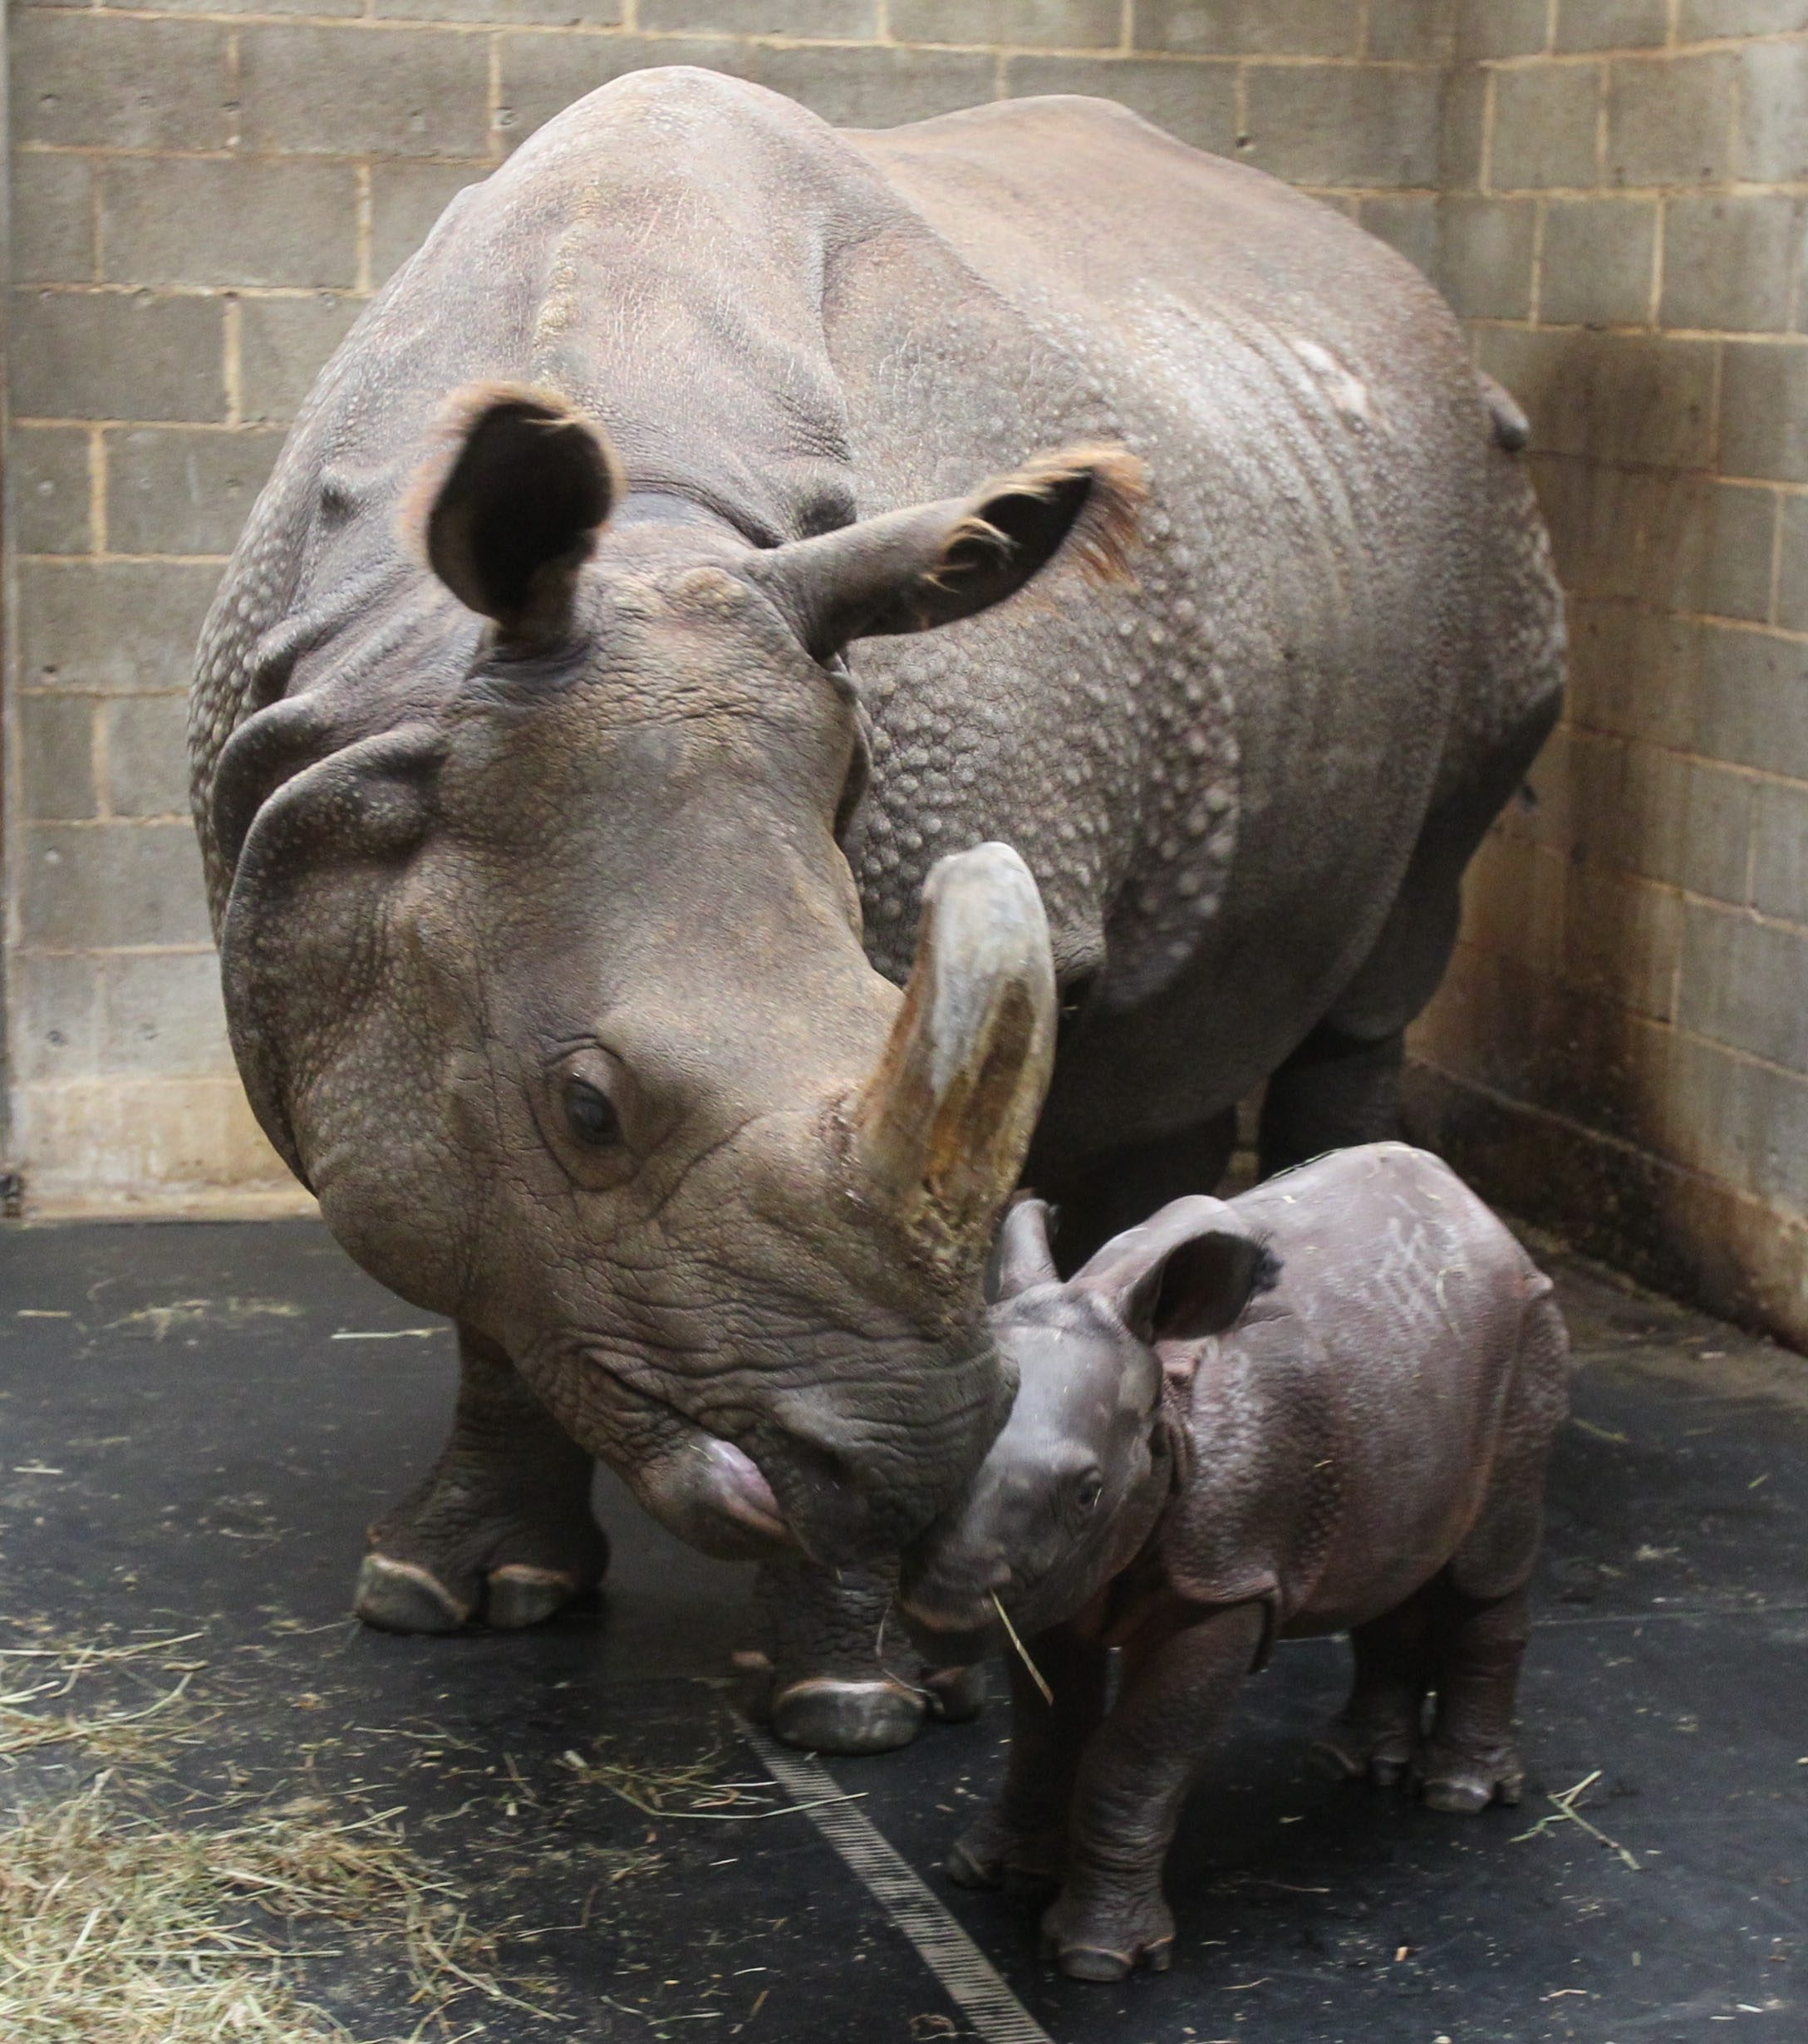 Monica, the baby Indian rhinoceros born last week at the Buffalo Zoo, rests with mother Tashi.